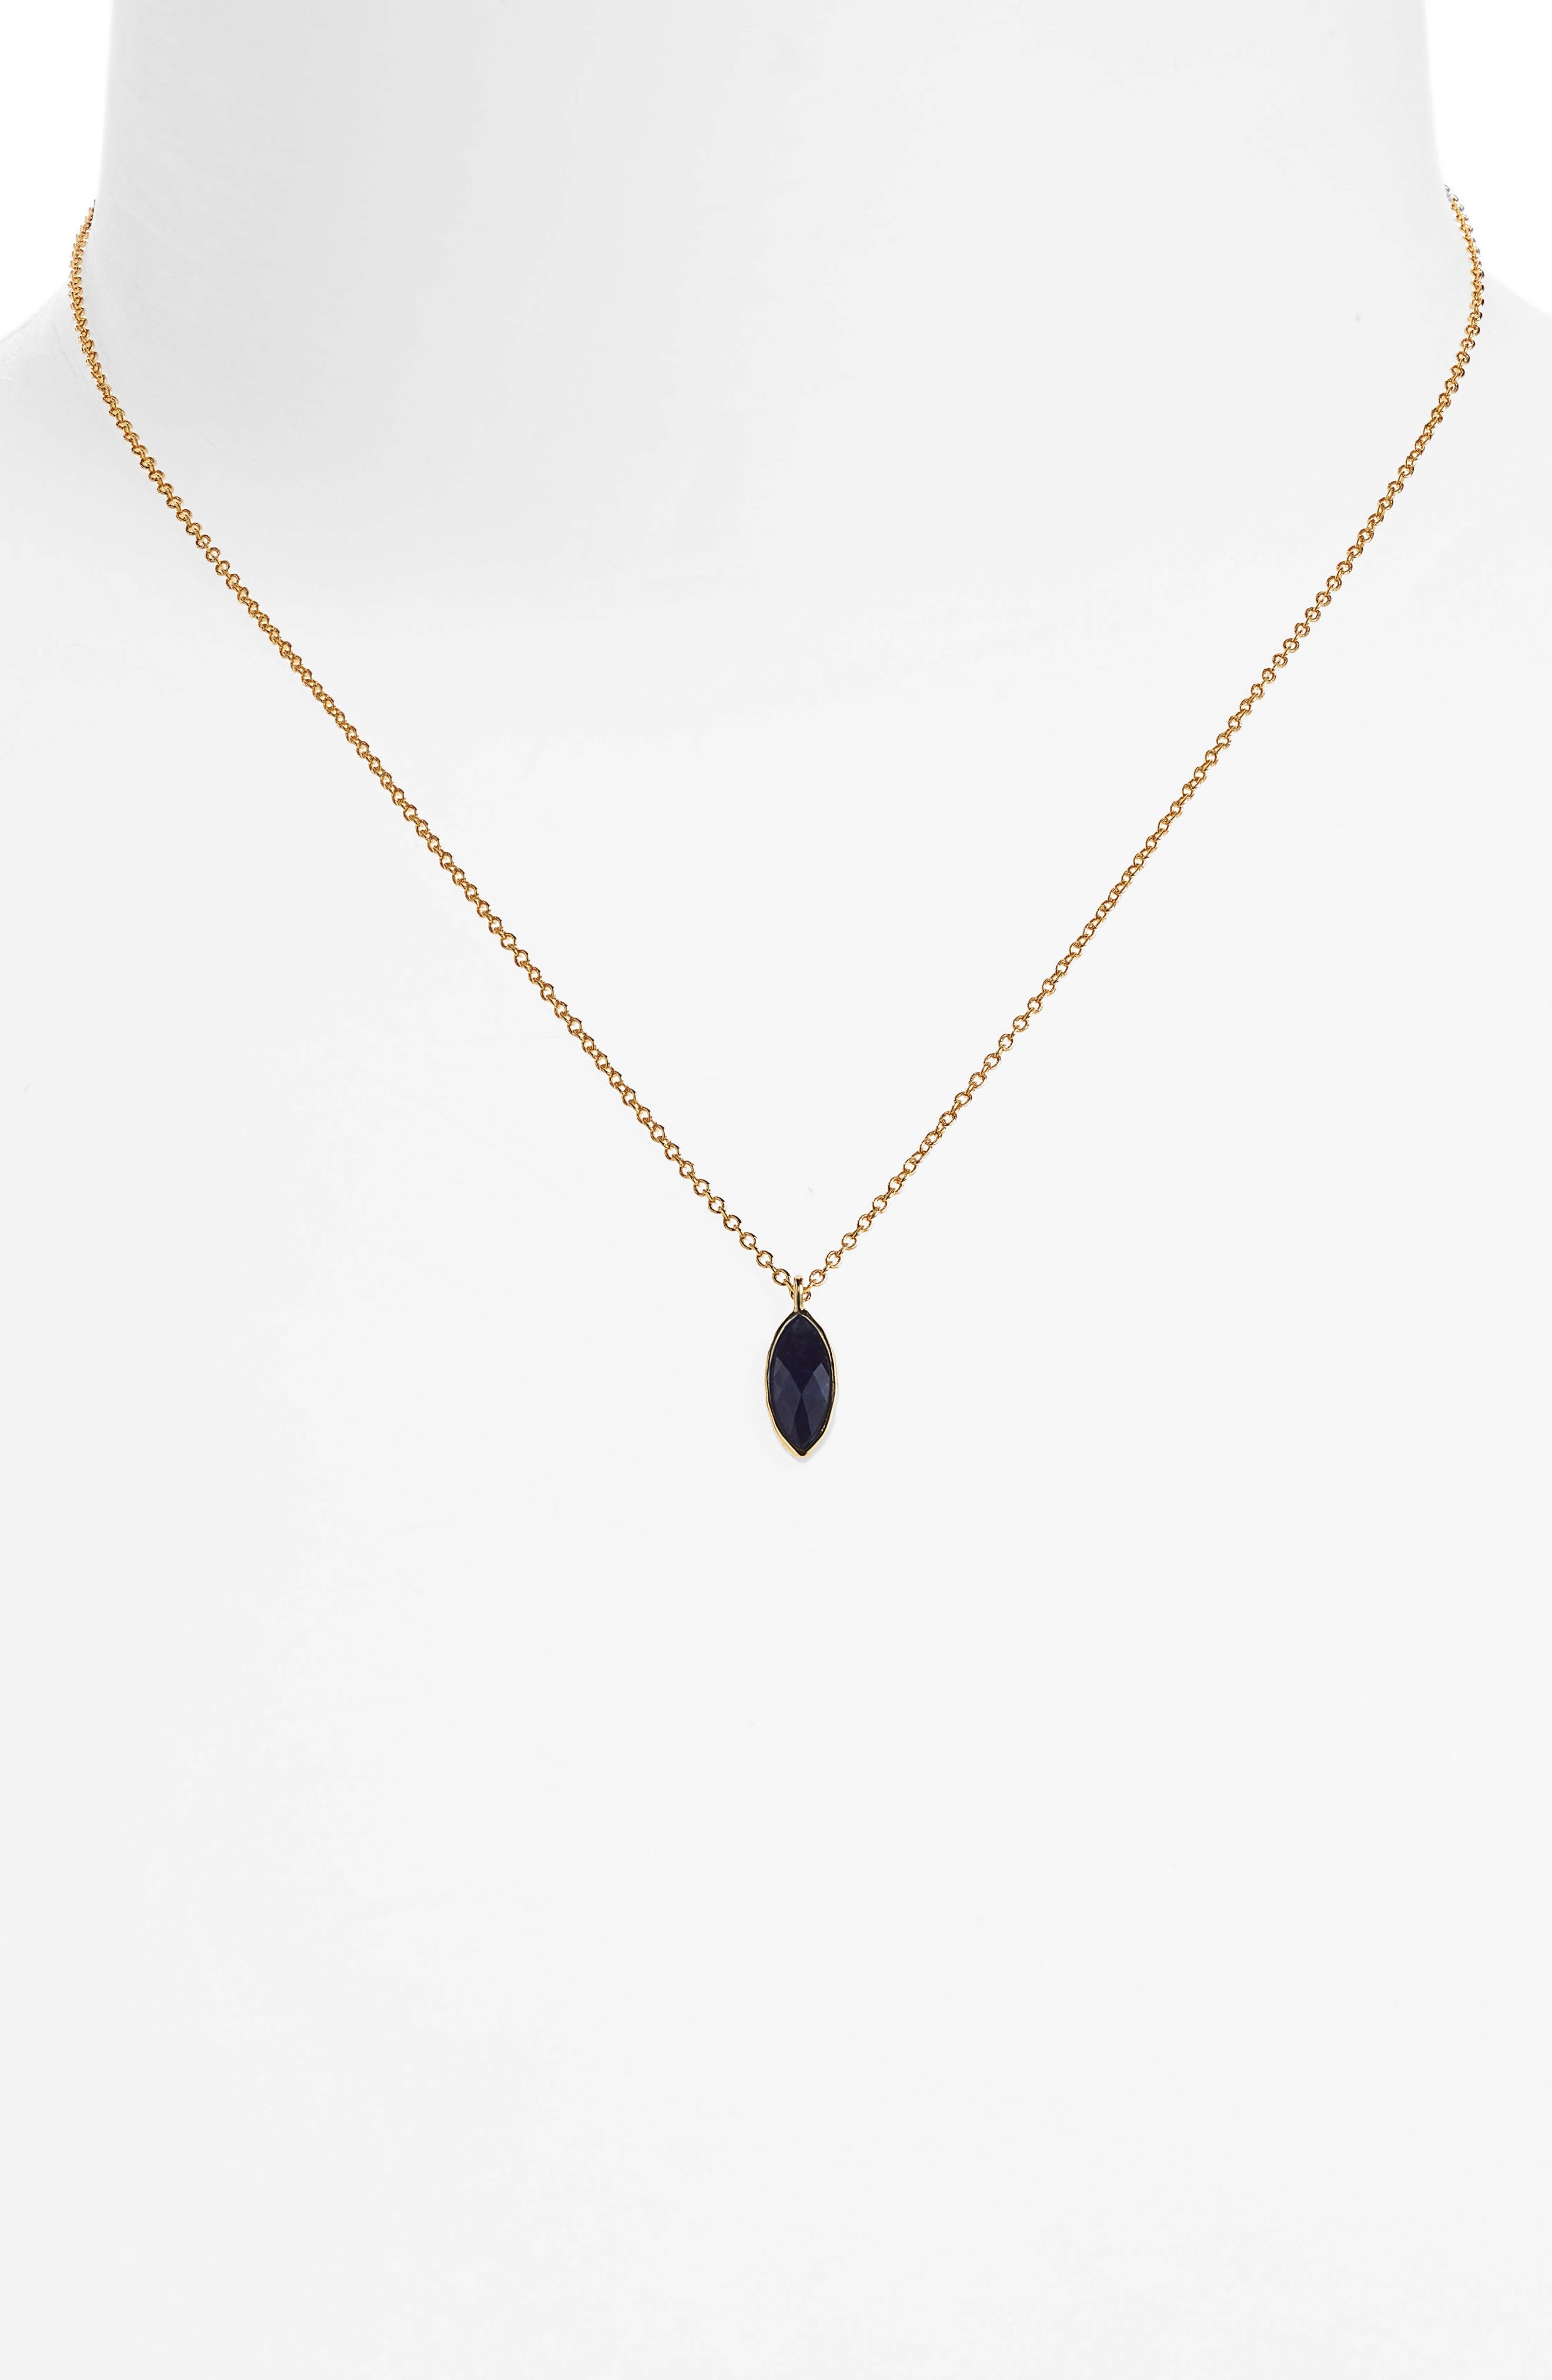 Palisades Adjustable Charm Necklace,                             Alternate thumbnail 2, color,                             Sodalite/ Gold